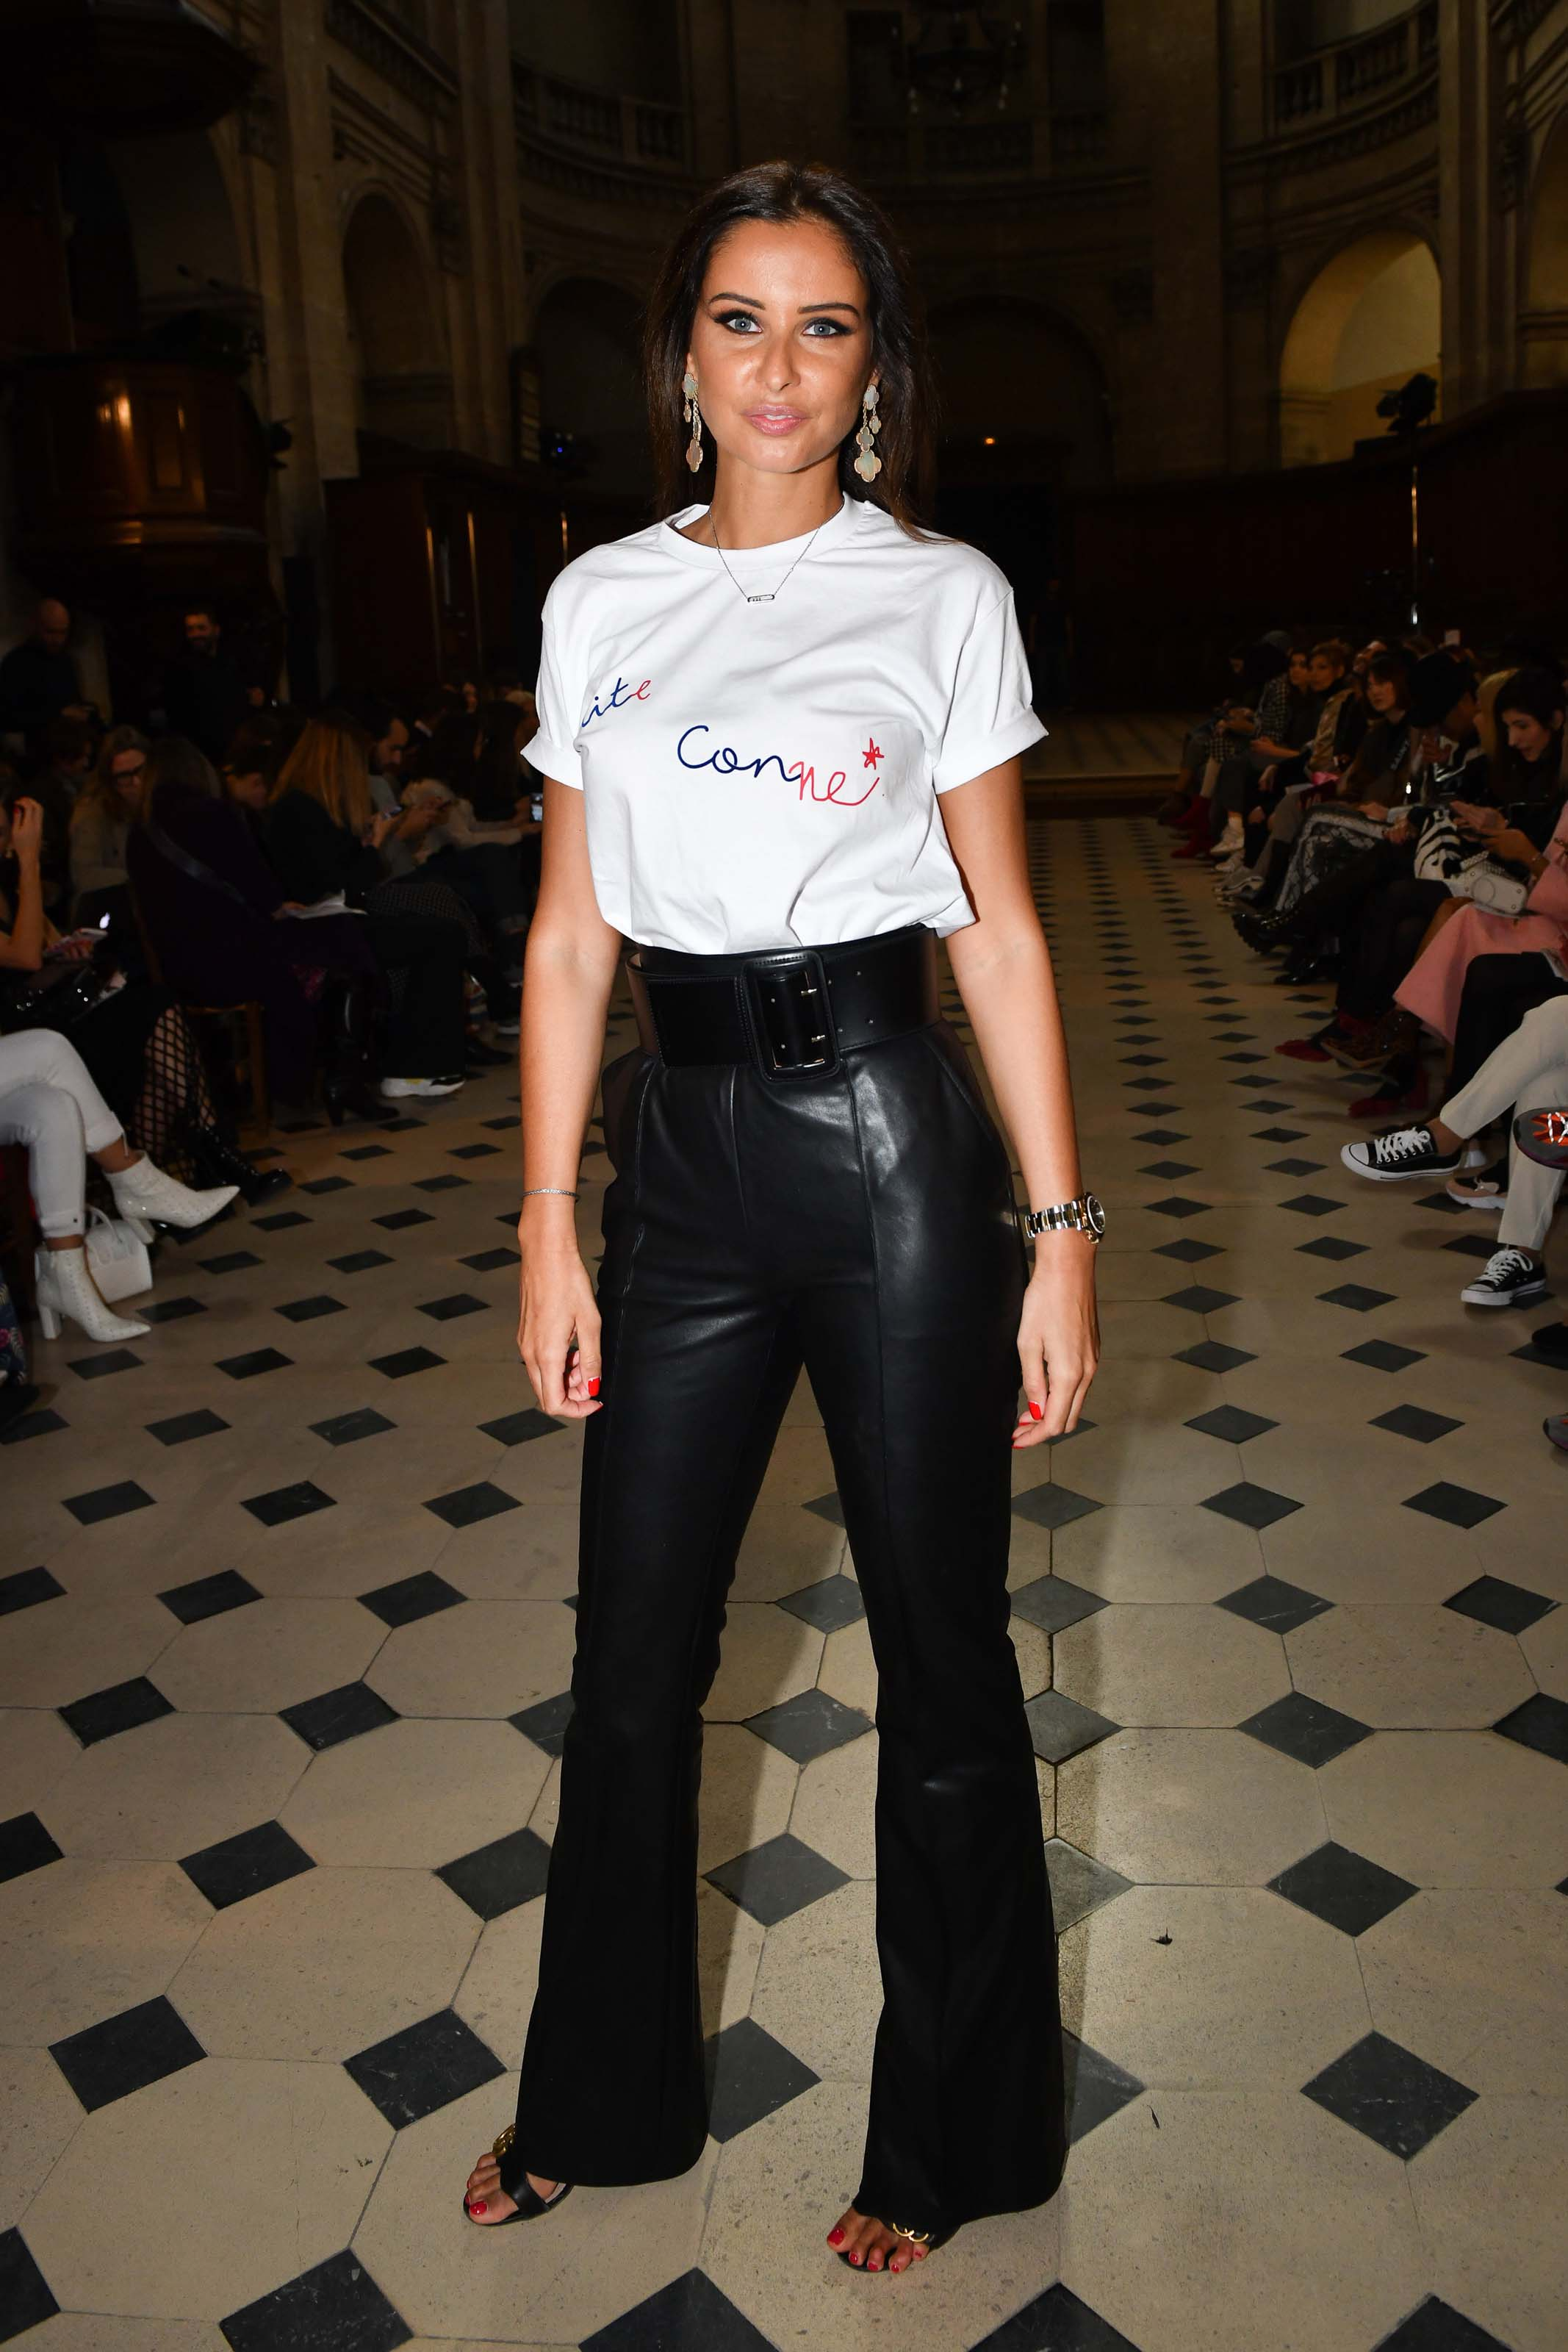 Melika menard lors de la fashion de la week